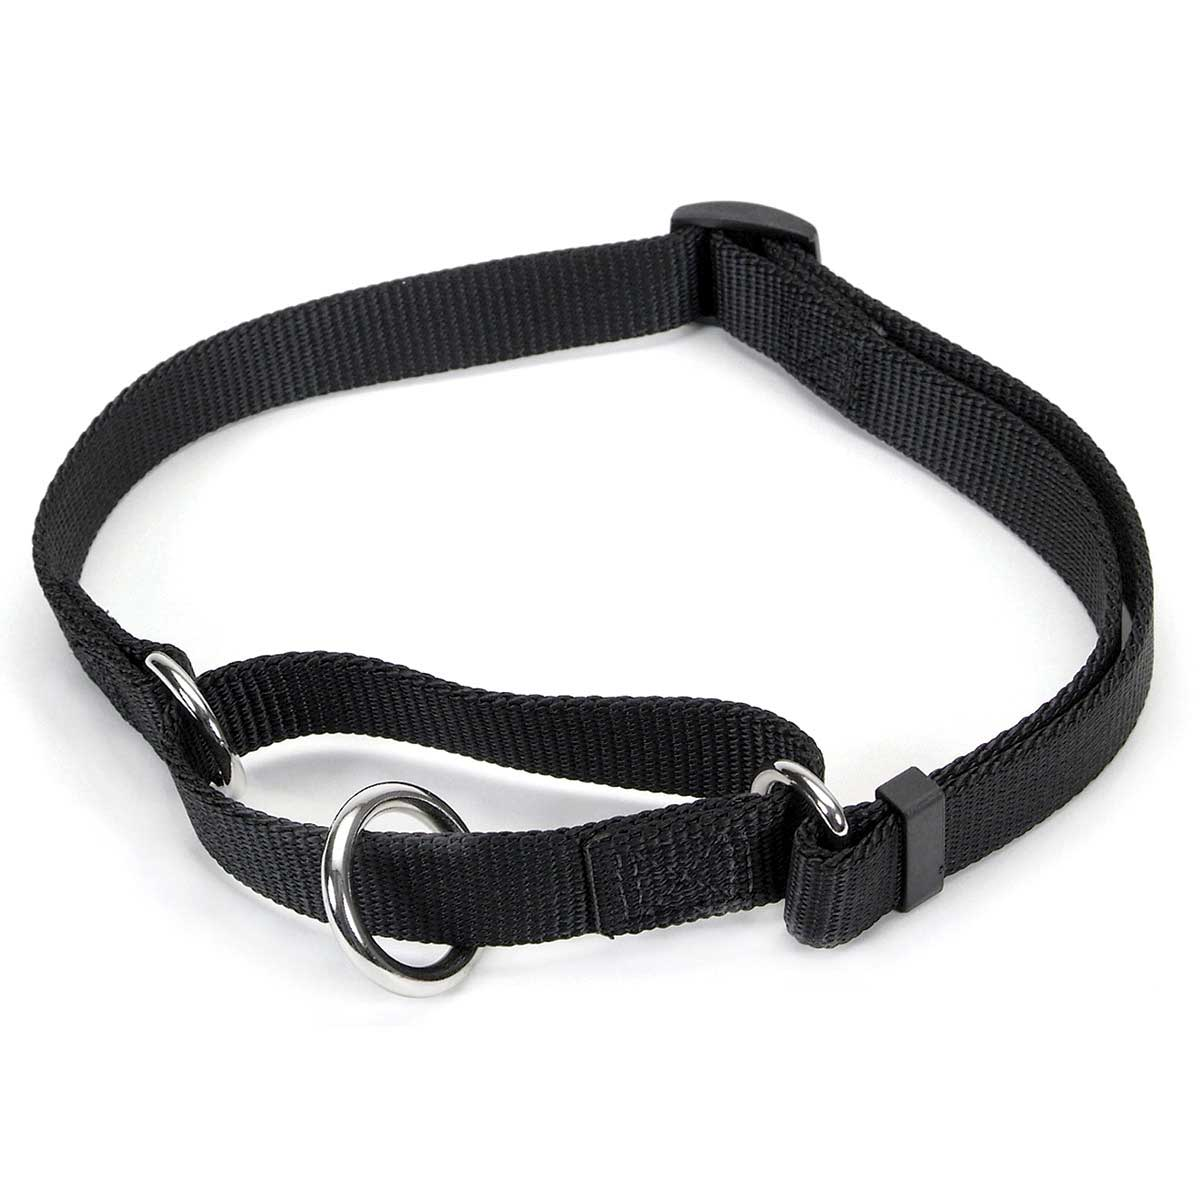 "Coastal 3/4"" No Slip! Martingale Collar Example"